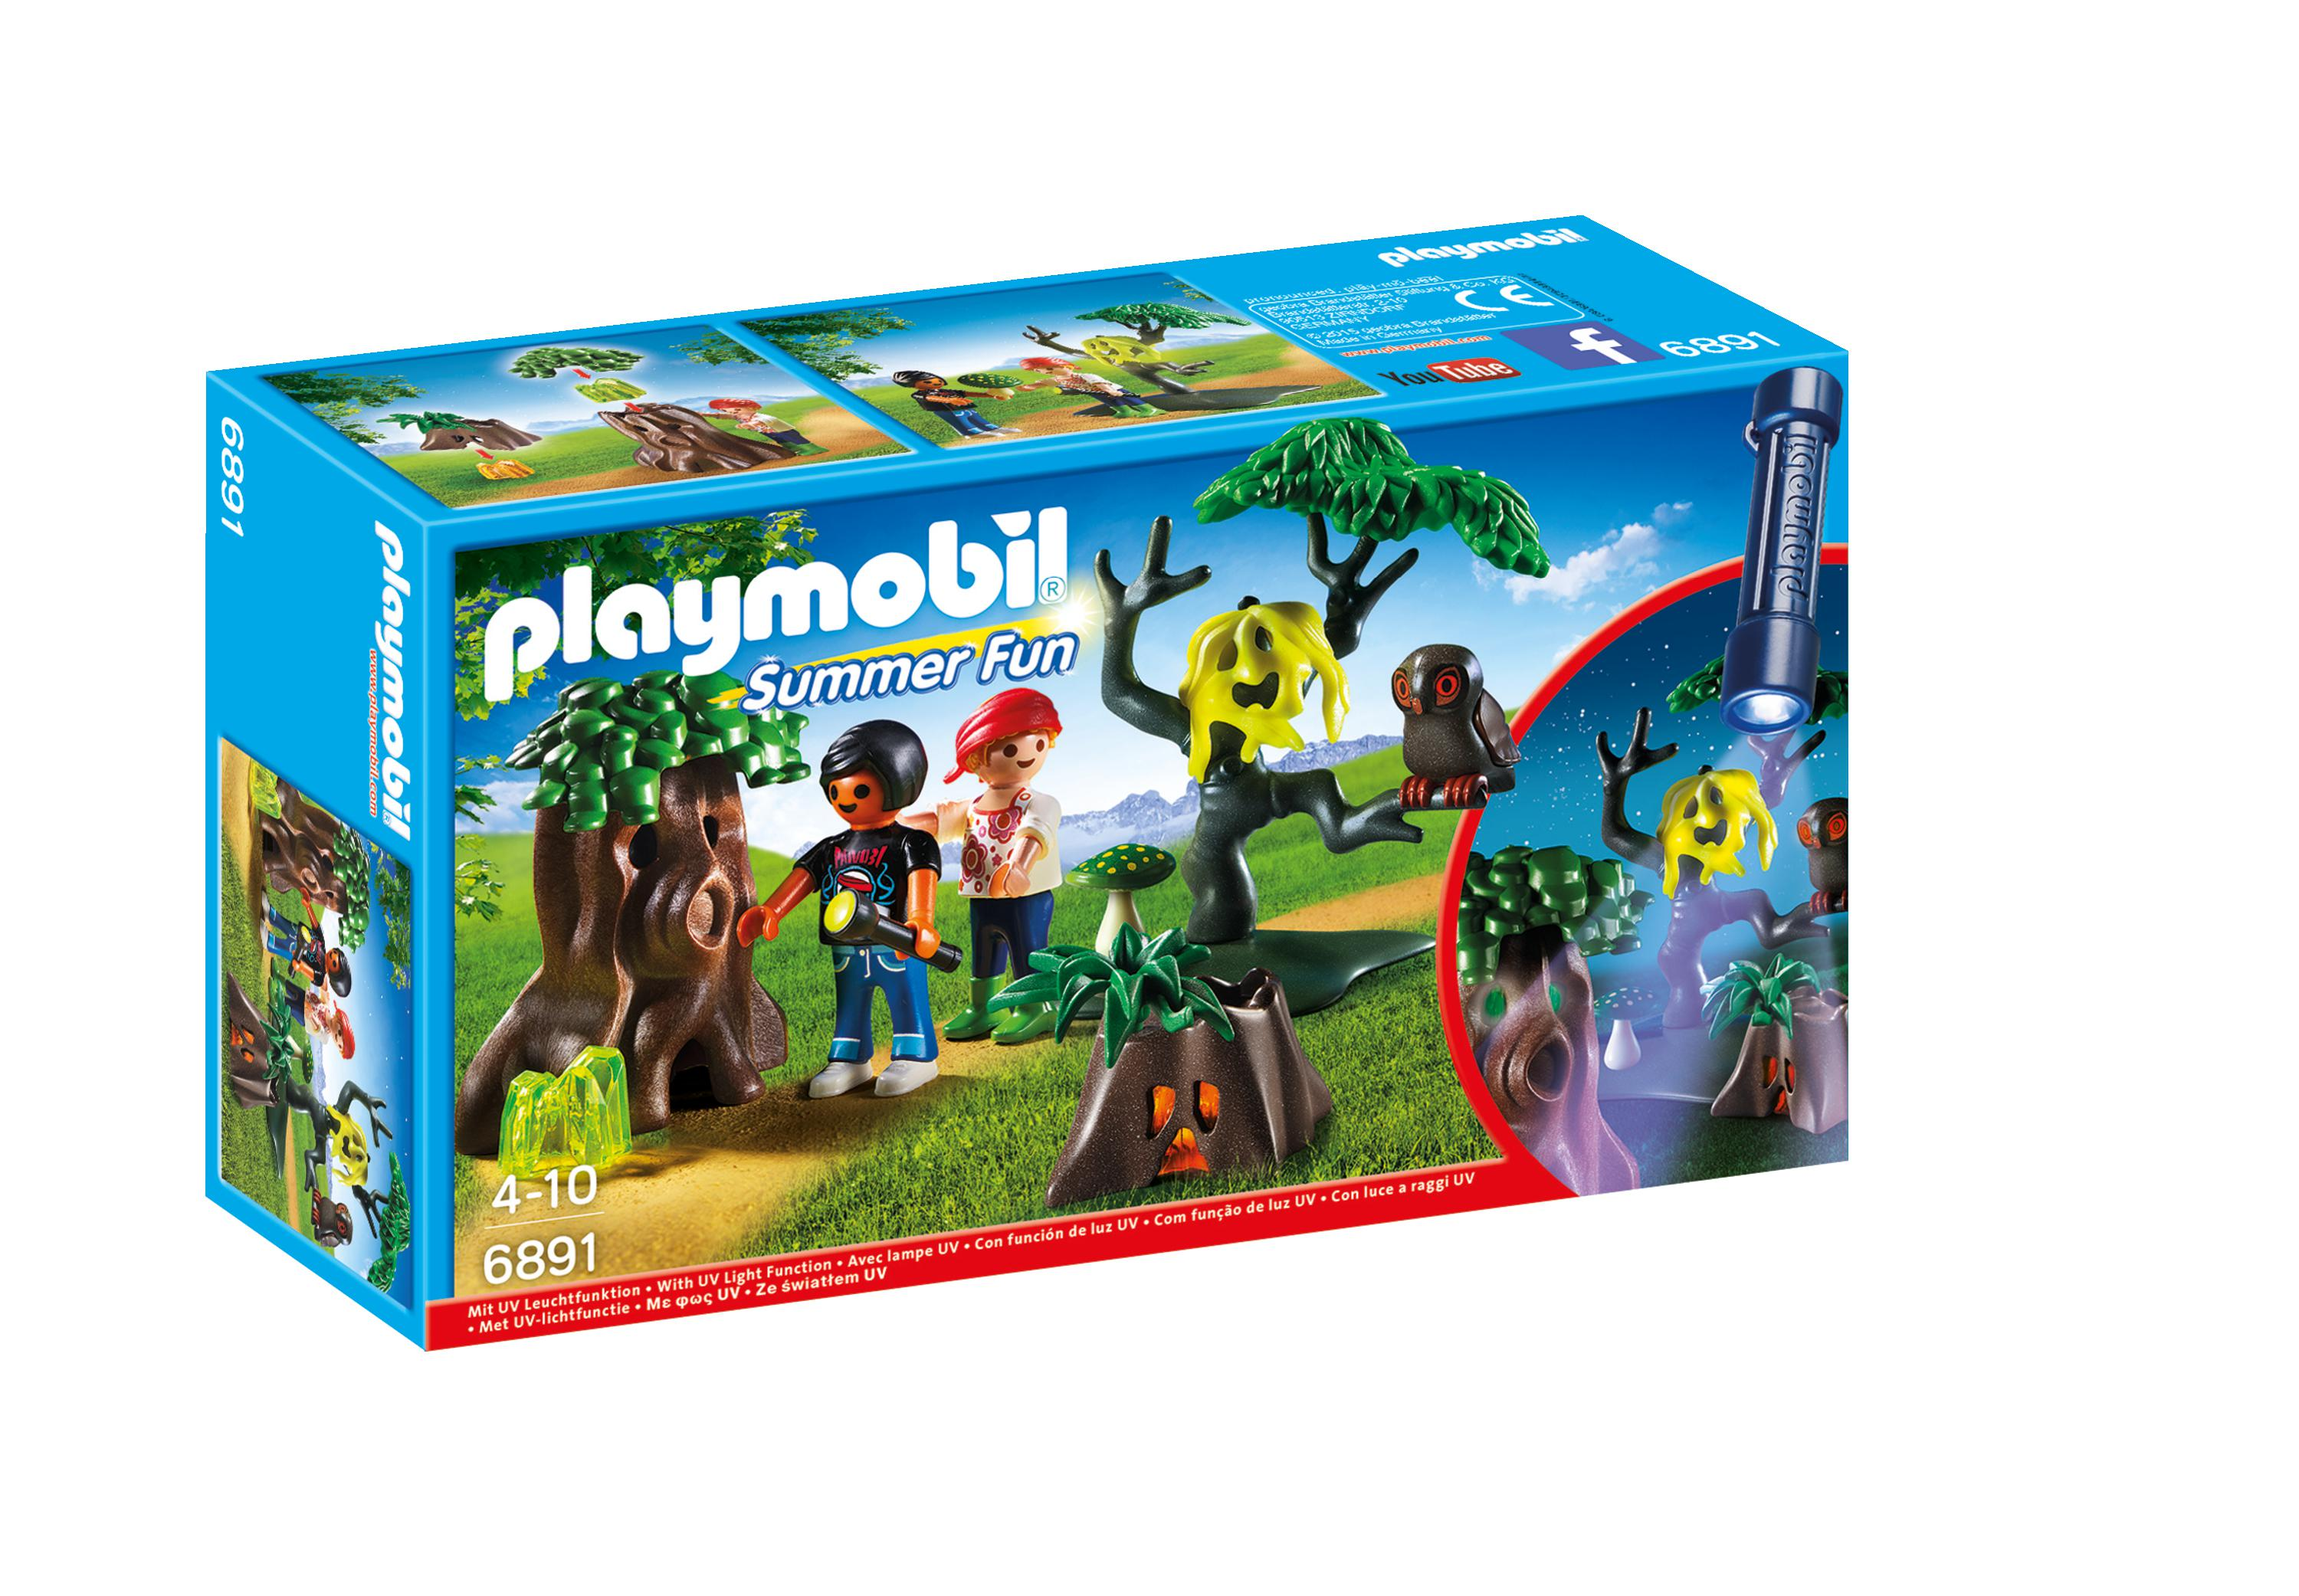 Playmobil 6891 Summer Fun Nachtdropping Met Uv-lamp